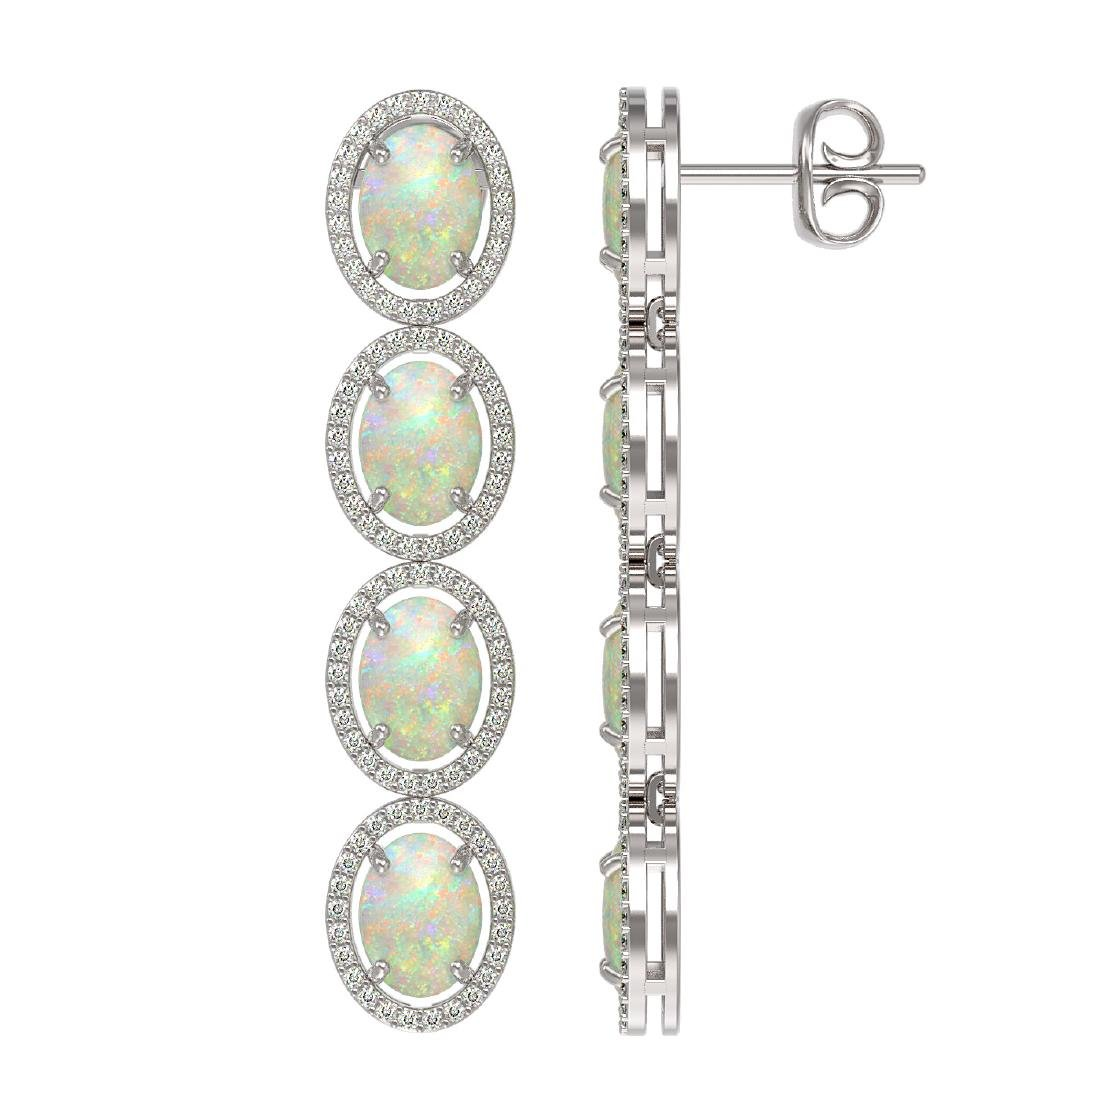 9.16 CTW Opal & Diamond Halo Earrings 10K White Gold - 2